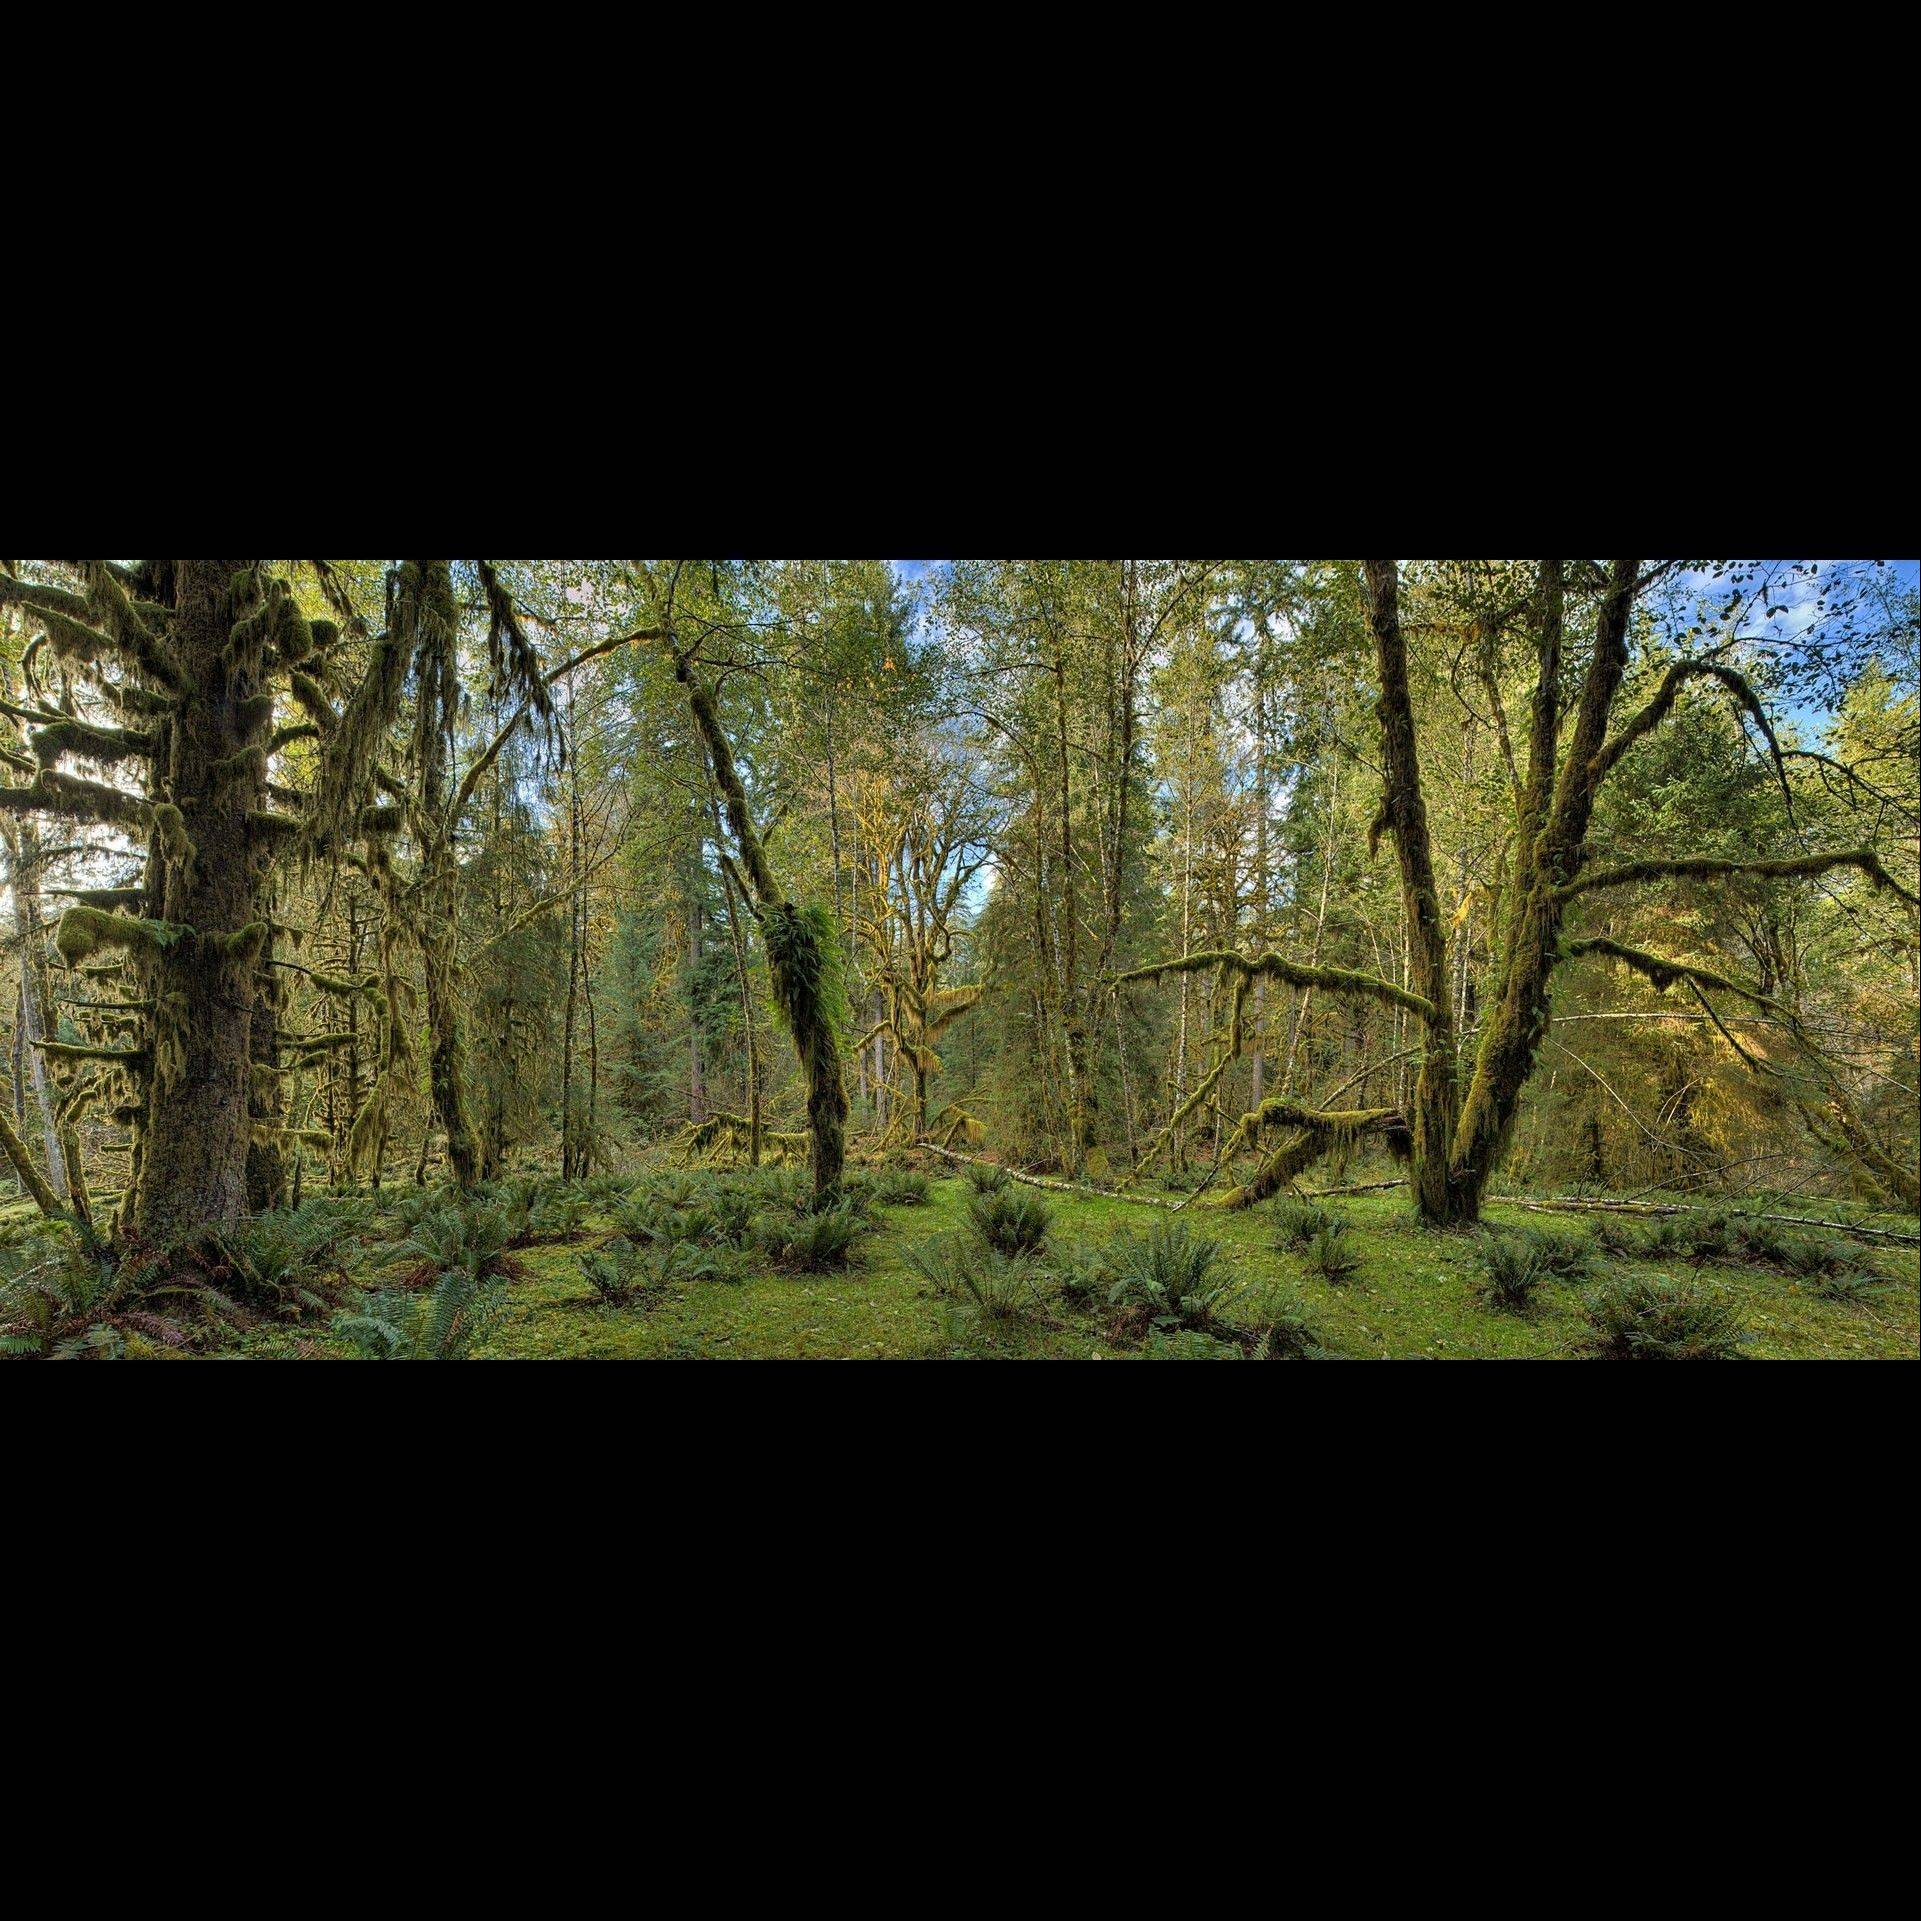 """Olympic Rain Forest"" is a work by St. Charles fine art photographer John Rydin. Rydin's work will be featured at the St. Charles Fine Art Show."